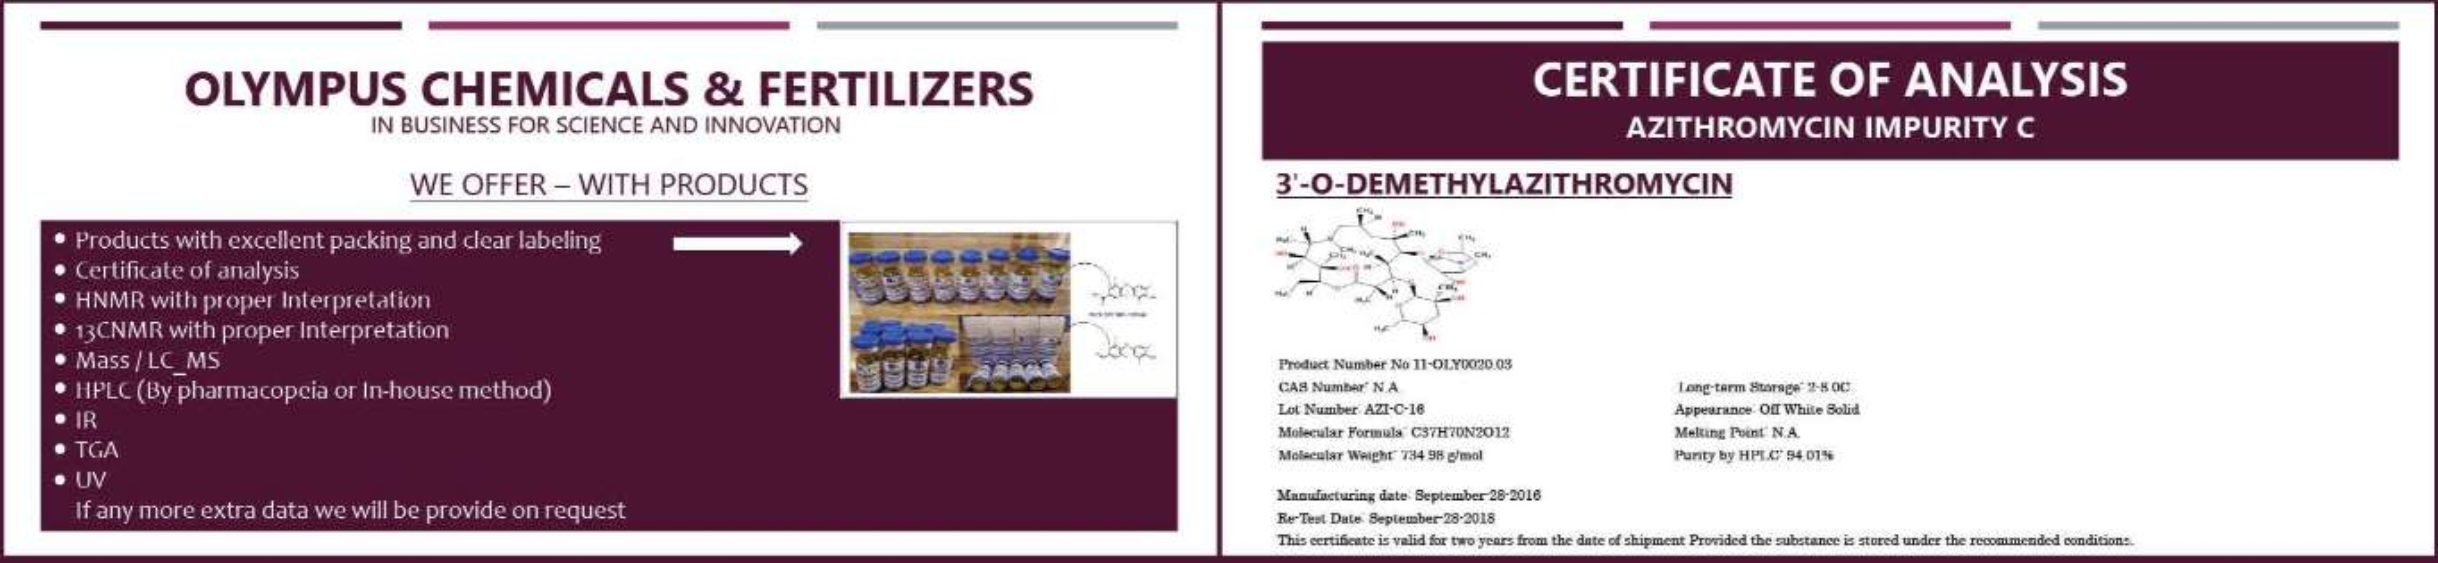 impurities-standard-supplier-olympus-chemicals-and-fertilizers-3